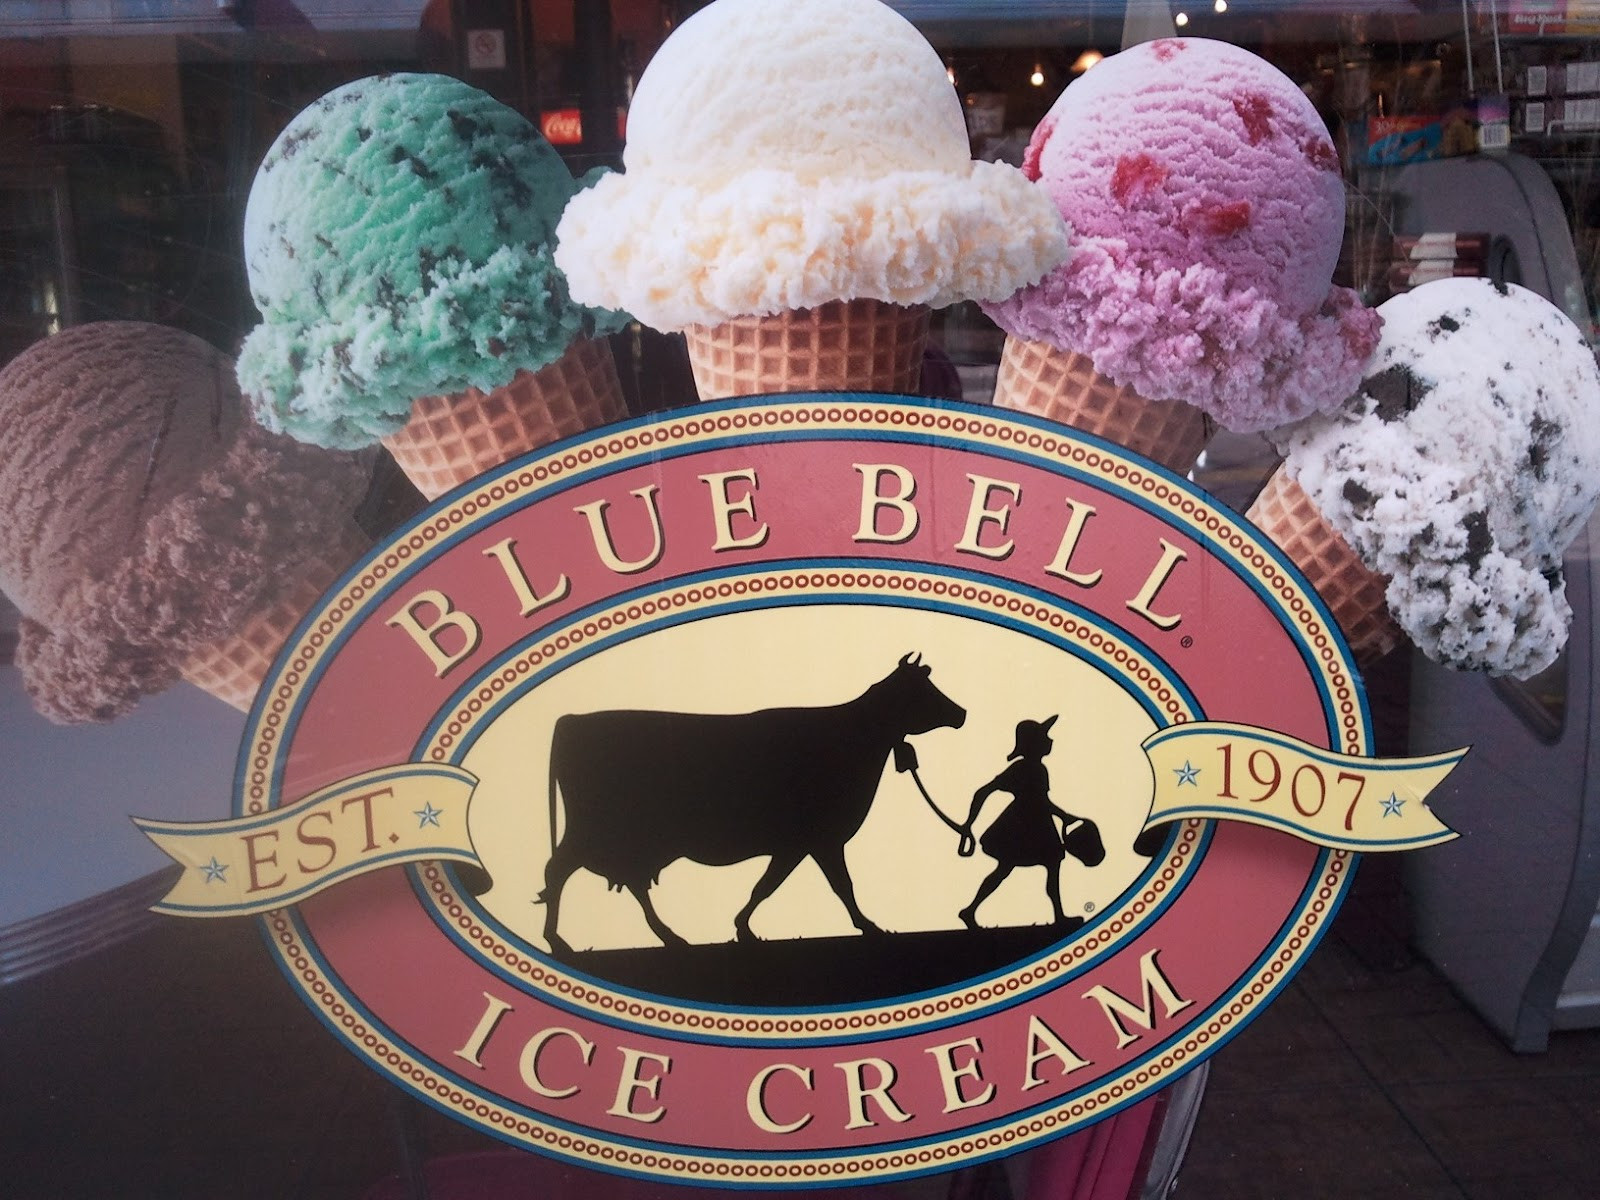 Best ideas about Blue Bell Birthday Cake Ice Cream . Save or Pin Foo Uncensored Blue Bell s Birthday Cake Ice Cream Now.